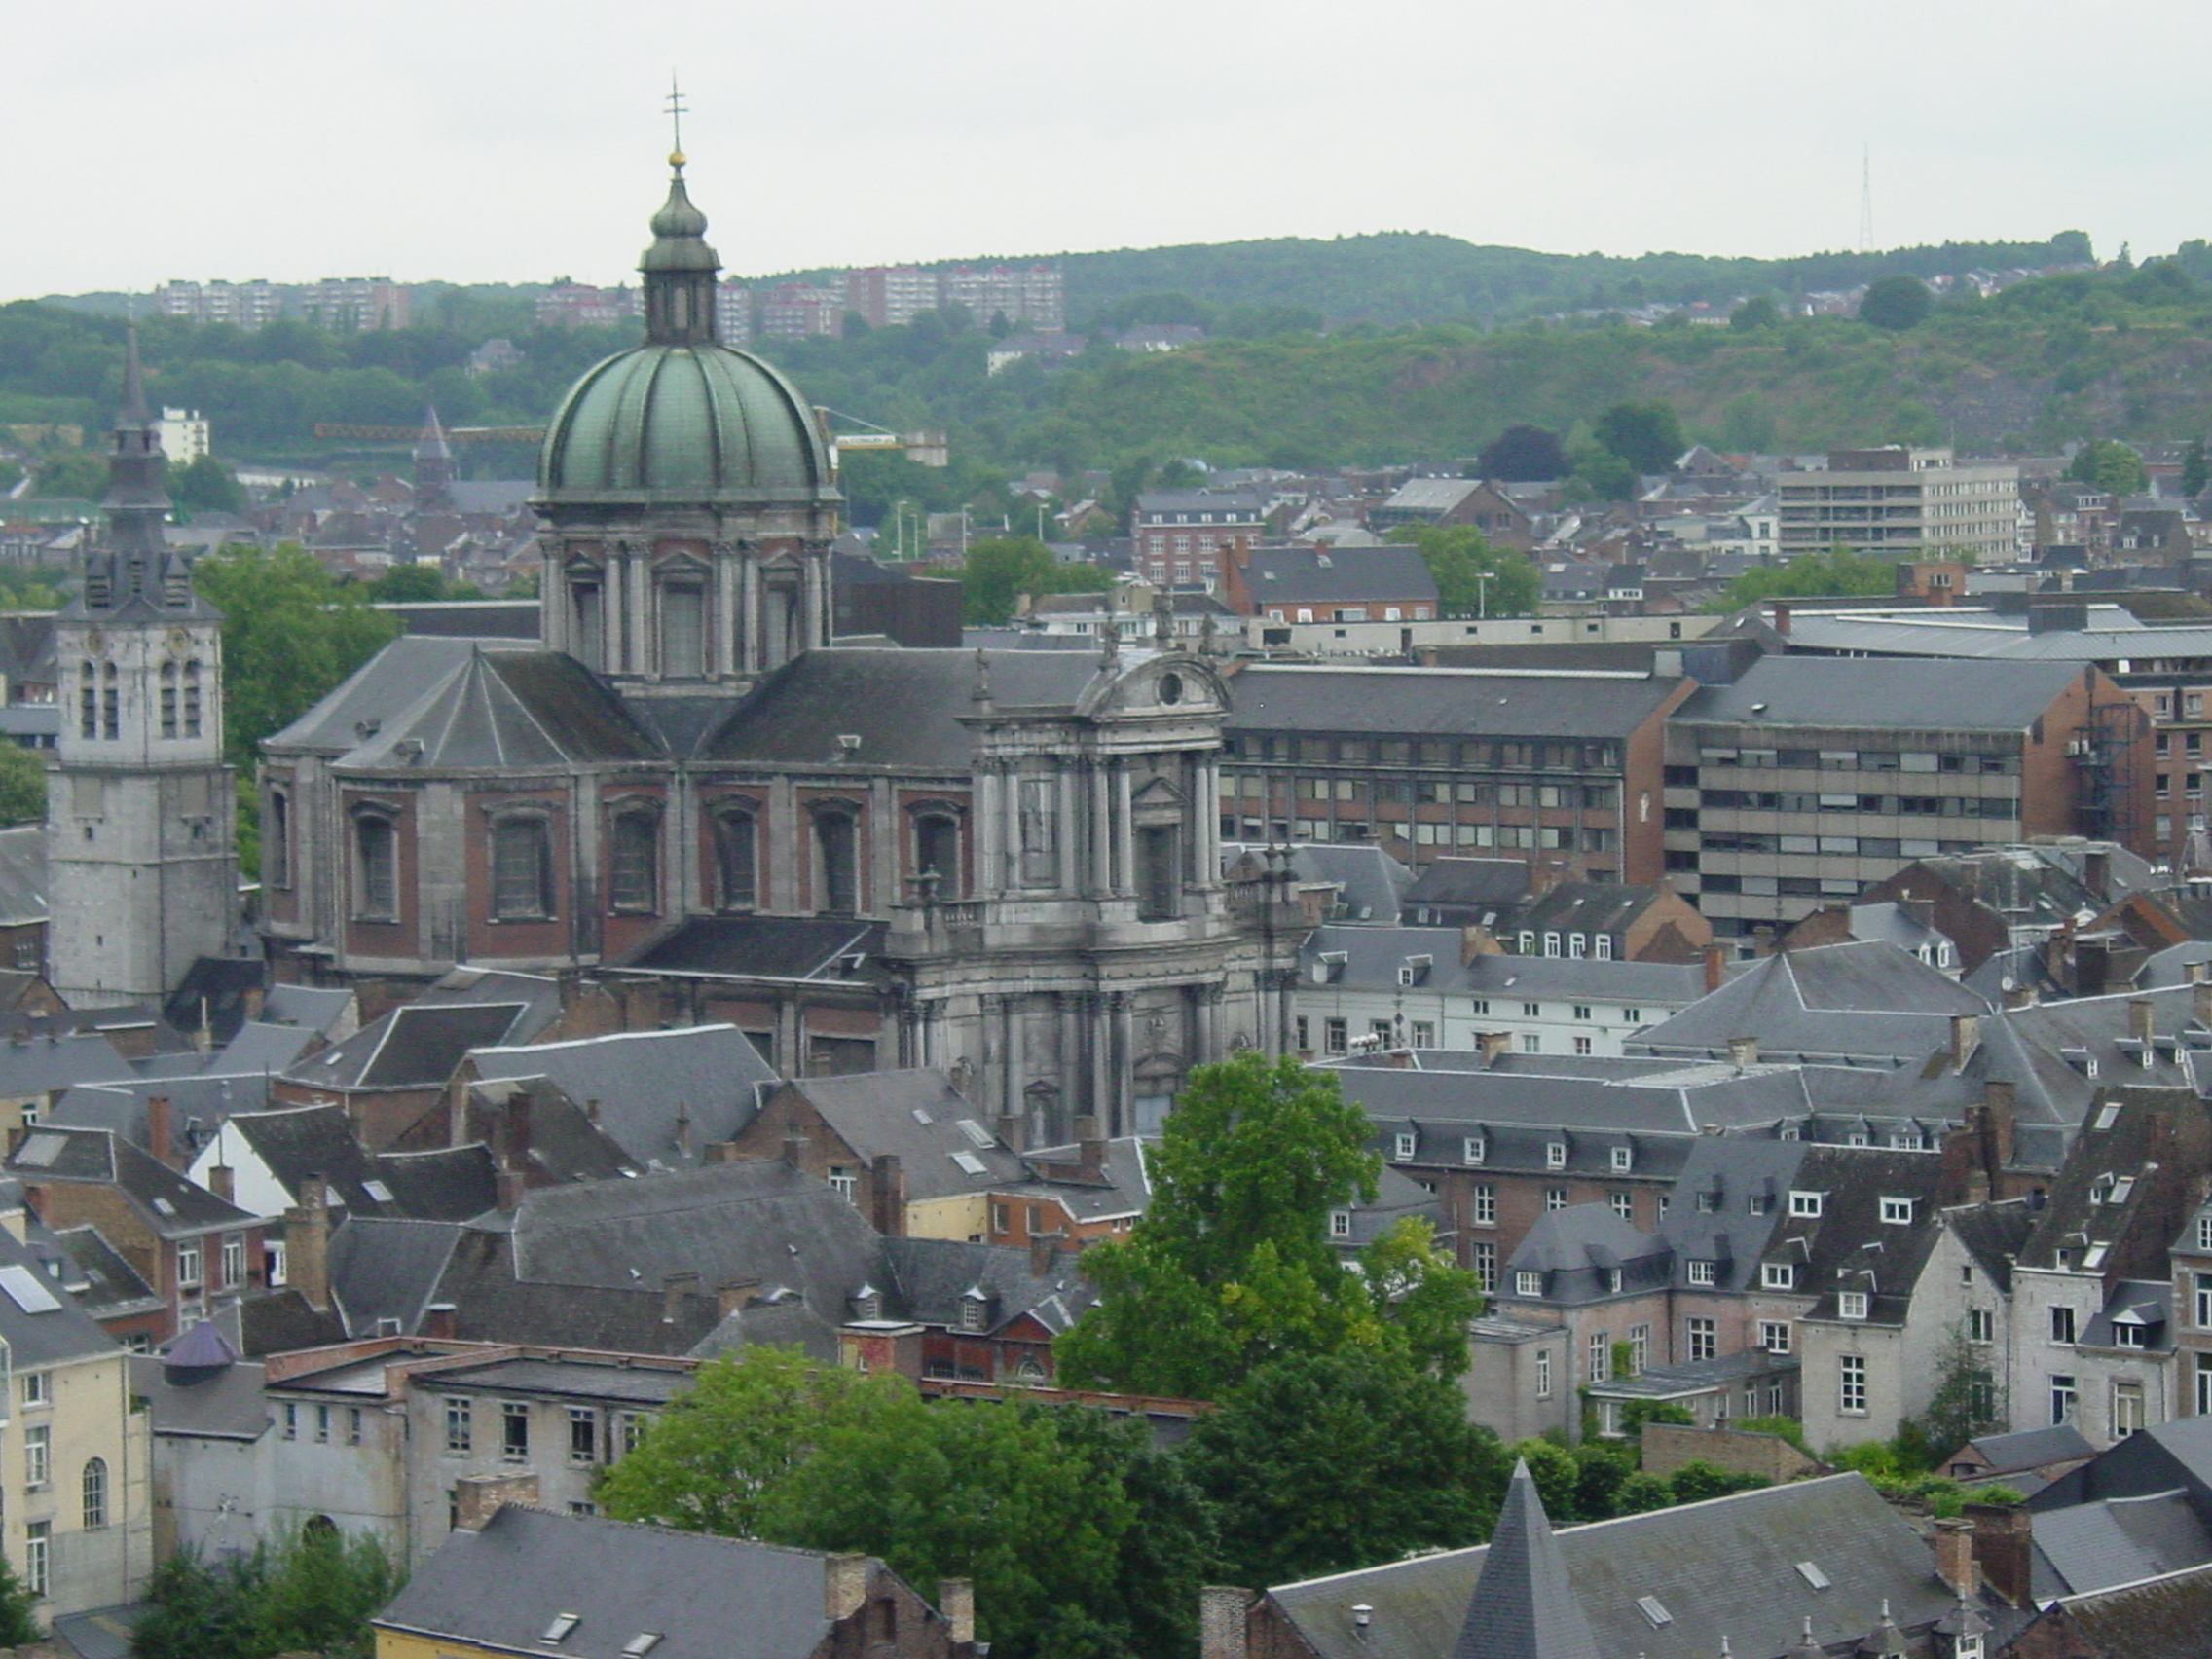 https://i2.wp.com/upload.wikimedia.org/wikipedia/commons/d/db/Namur,_la_Cath%C3%A9drale_Saint-Aubain.JPG